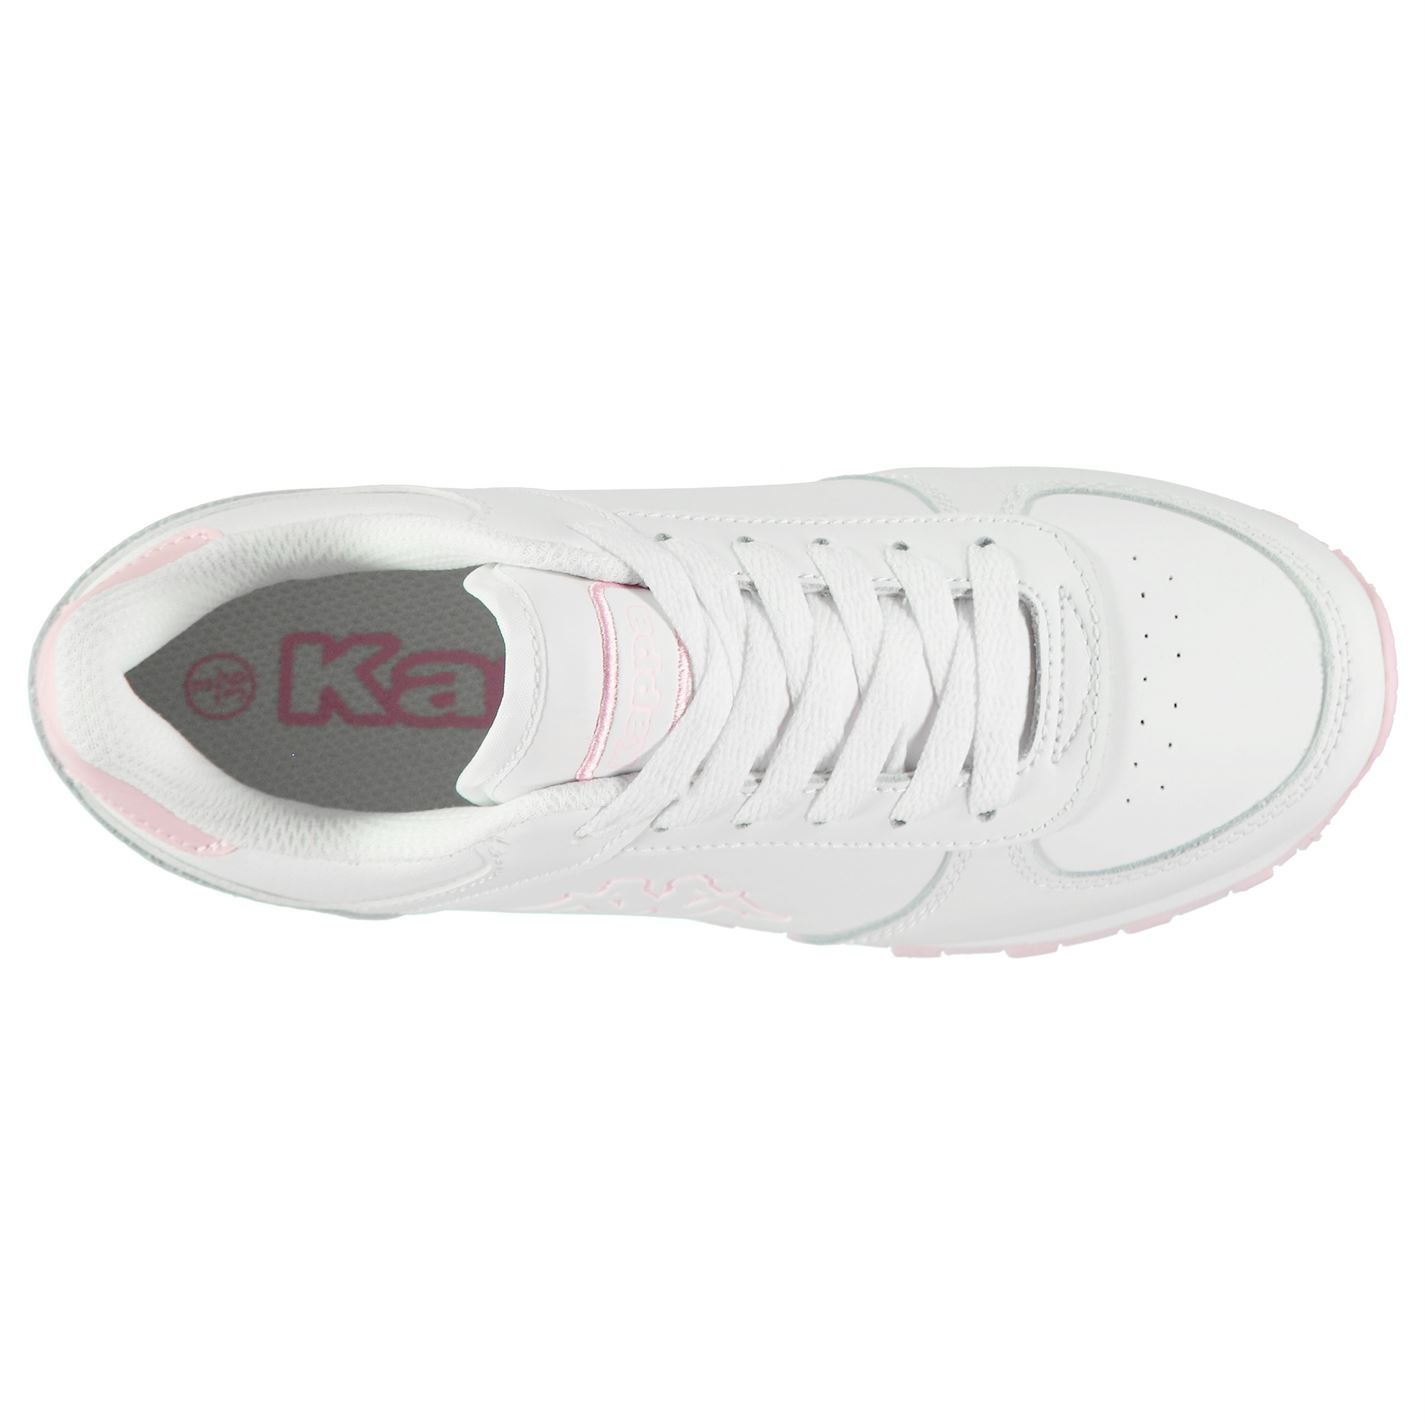 Kappa Persaro DLX Youngster Sneakers Childrens Low Laces Fastened Leather Upper